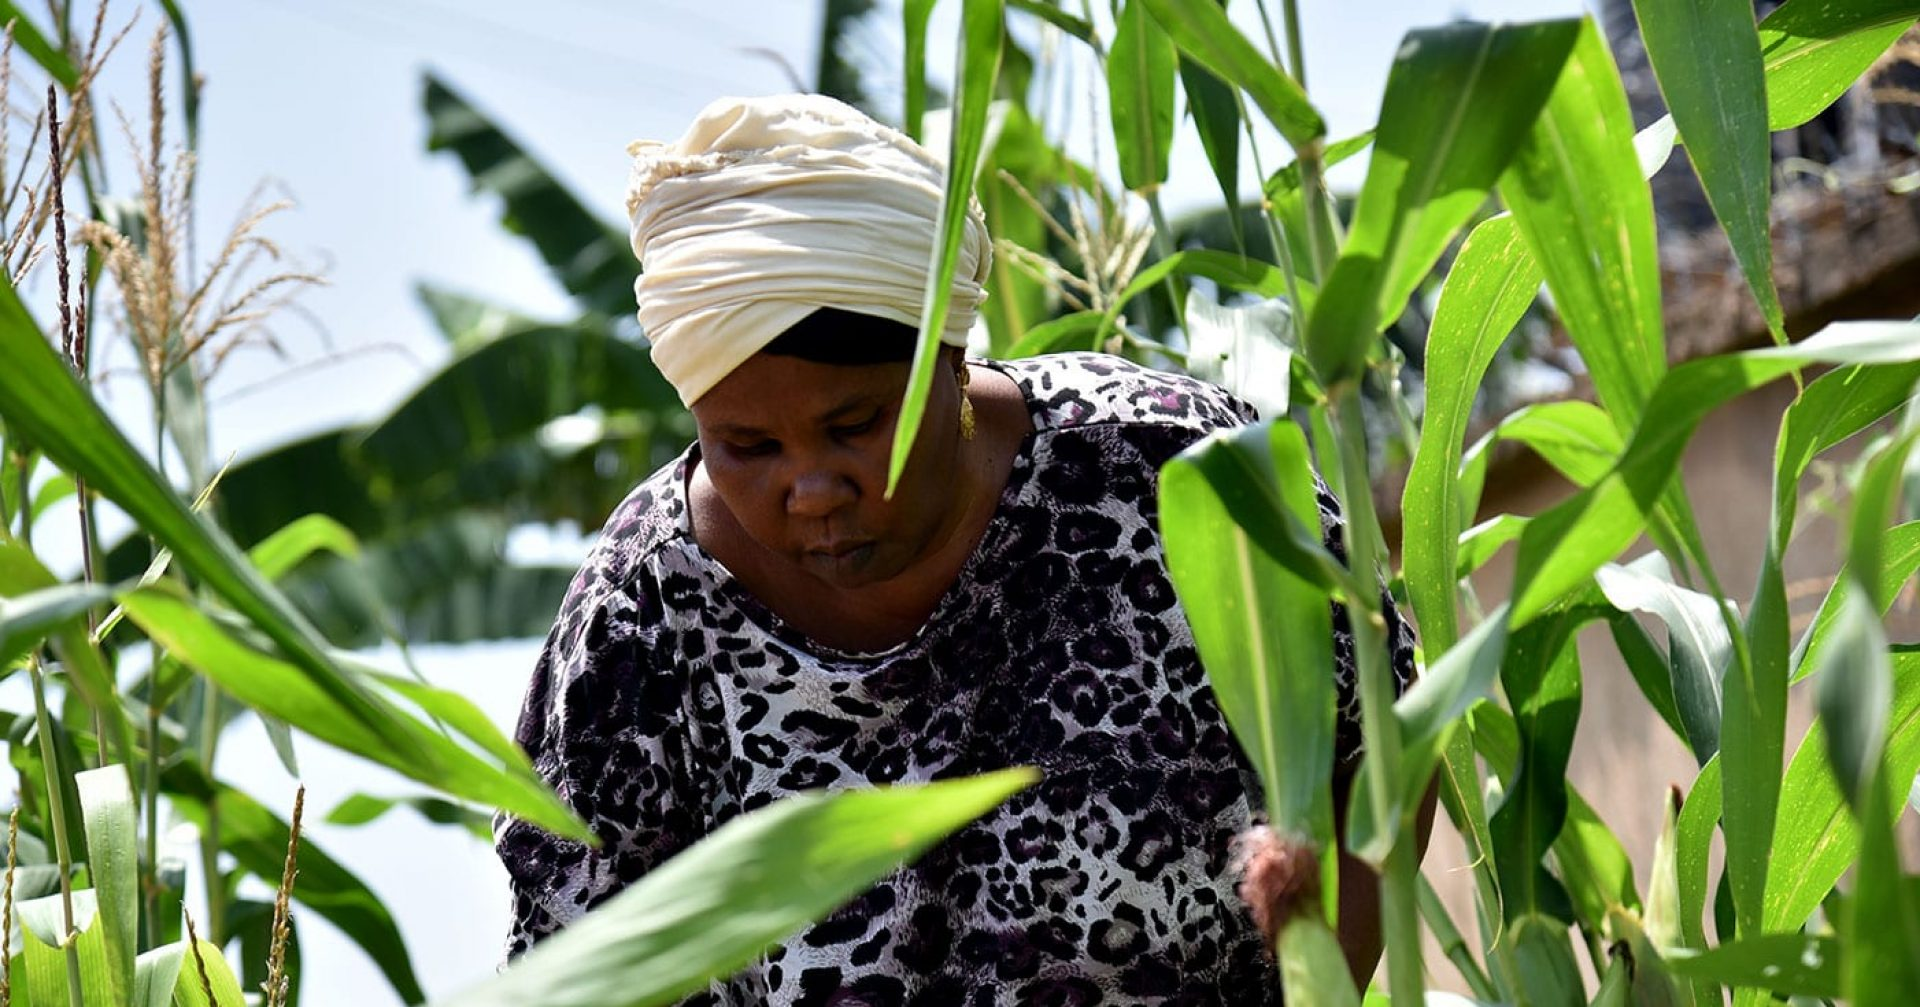 A woman standing in rows of corn